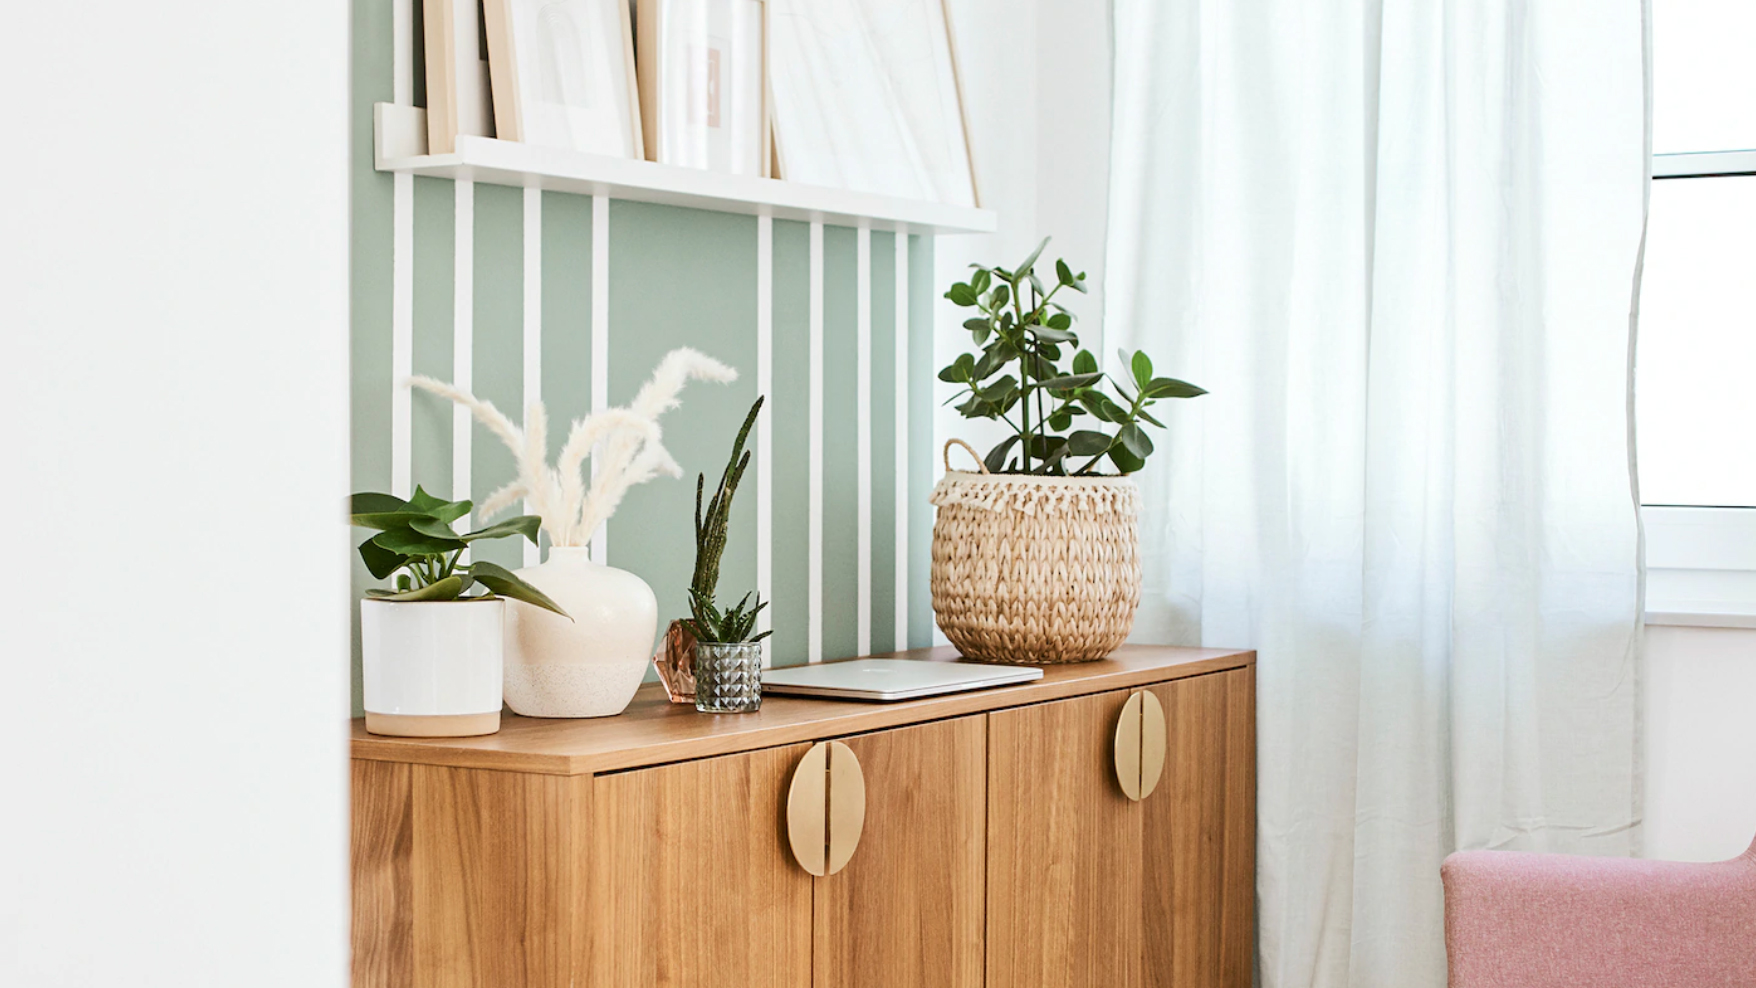 Ikea Hacks Easy Projects To Do This Weekend Real Homes,What Colours Go With Olive Green Walls